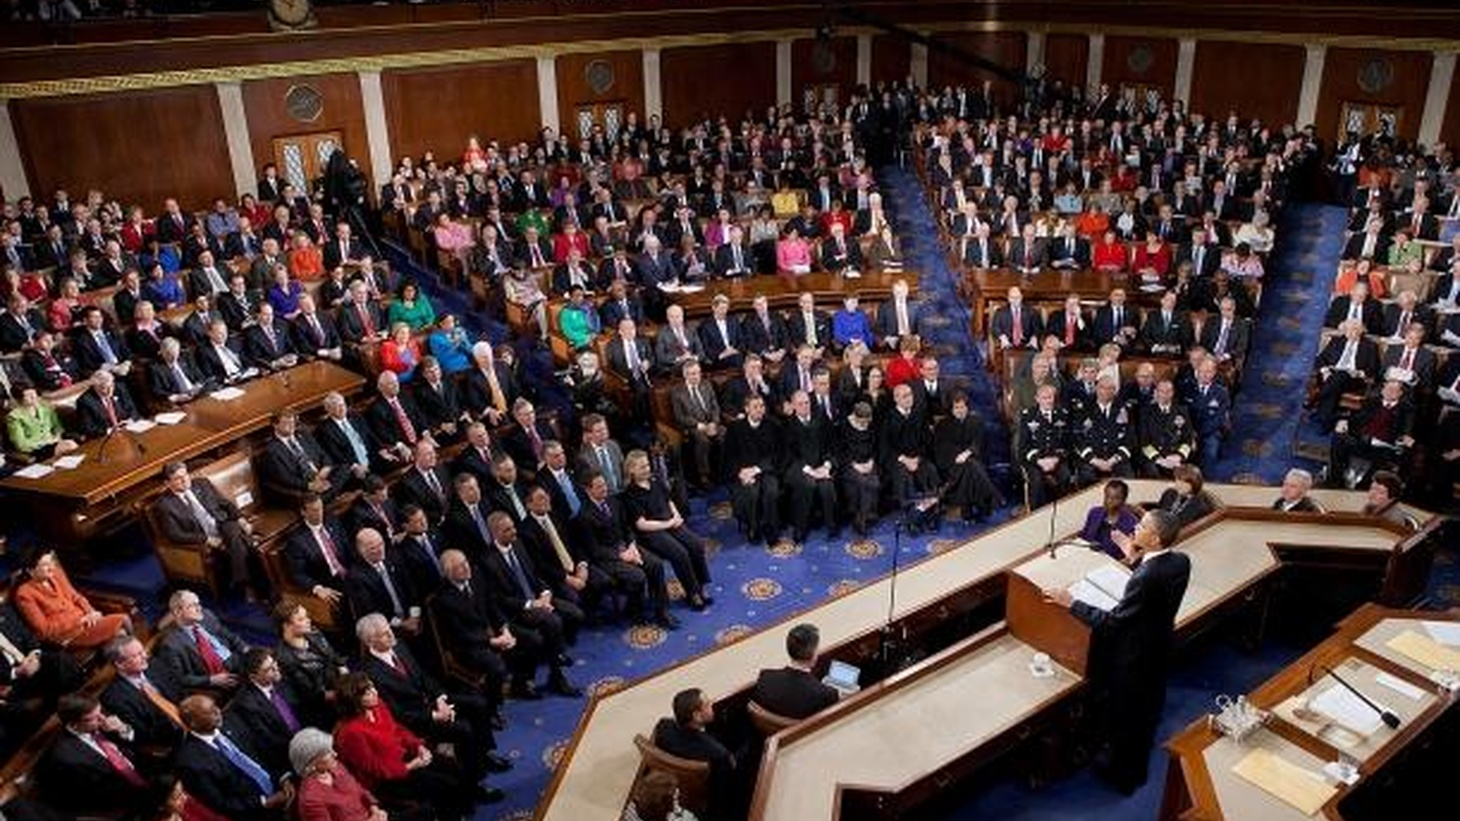 President Obama will deliver his 2012 State of the Union address on Tuesday, January 24 at 6pm. KCRW will carry the address, as well as the Republican response.